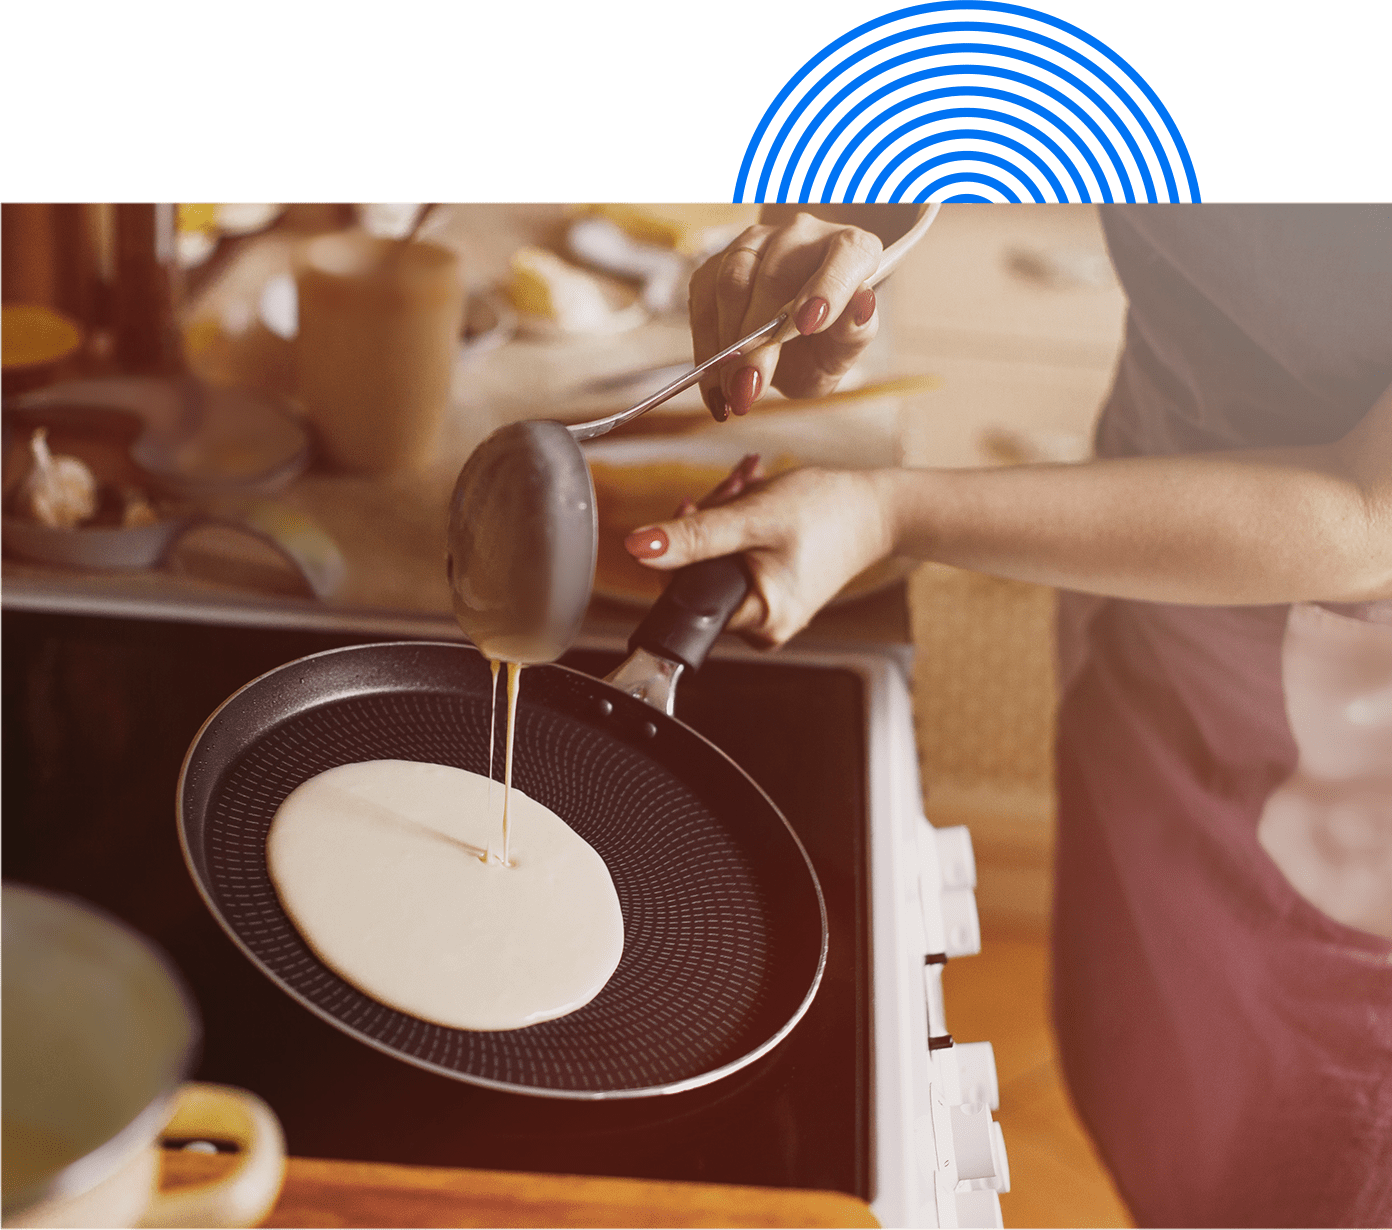 cooking a program approved pancake